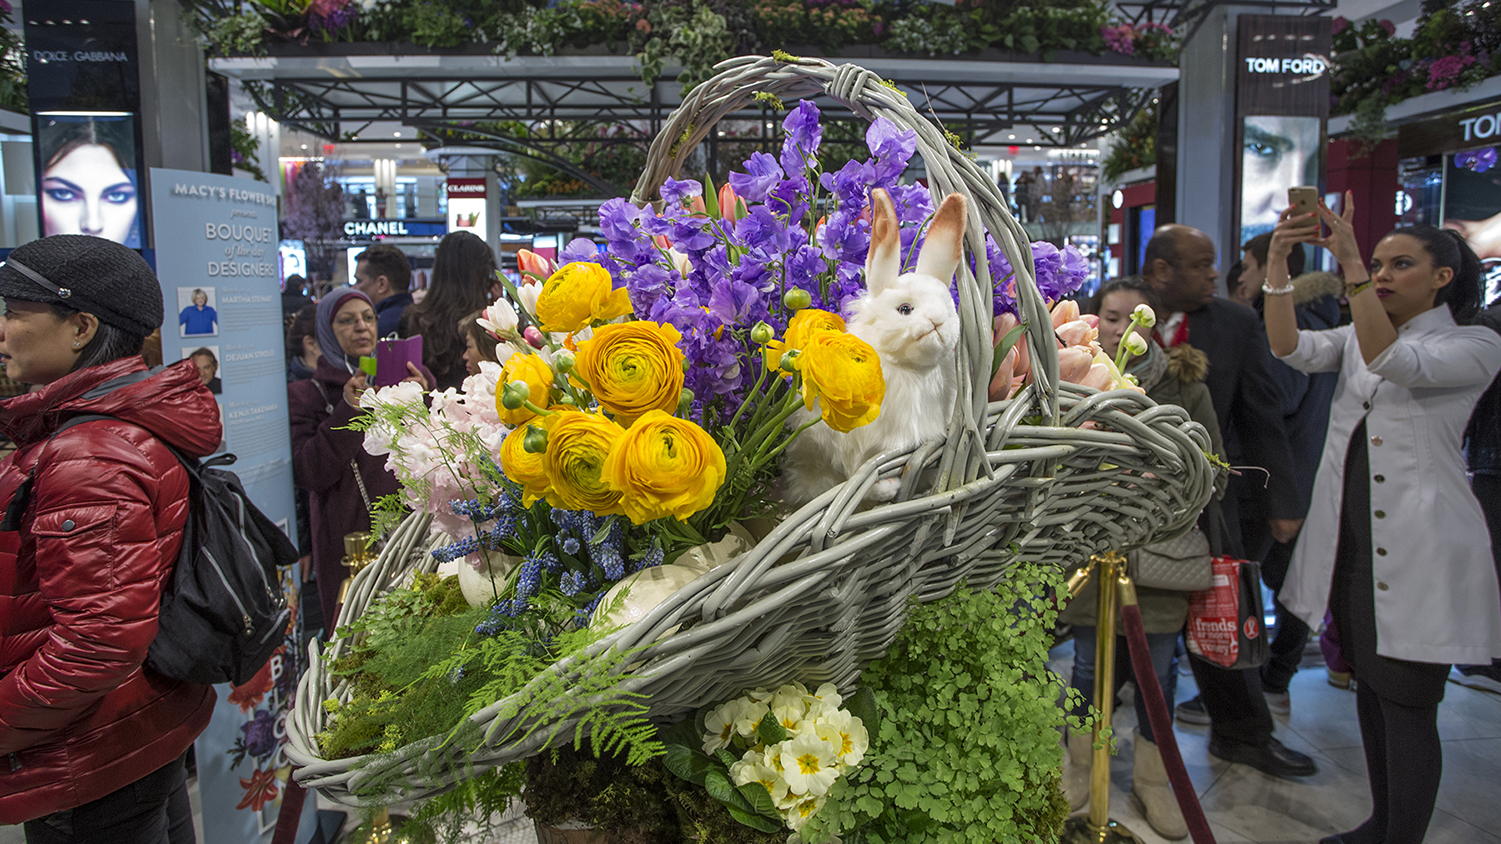 Gorgeous photos of Macy's Flower Show